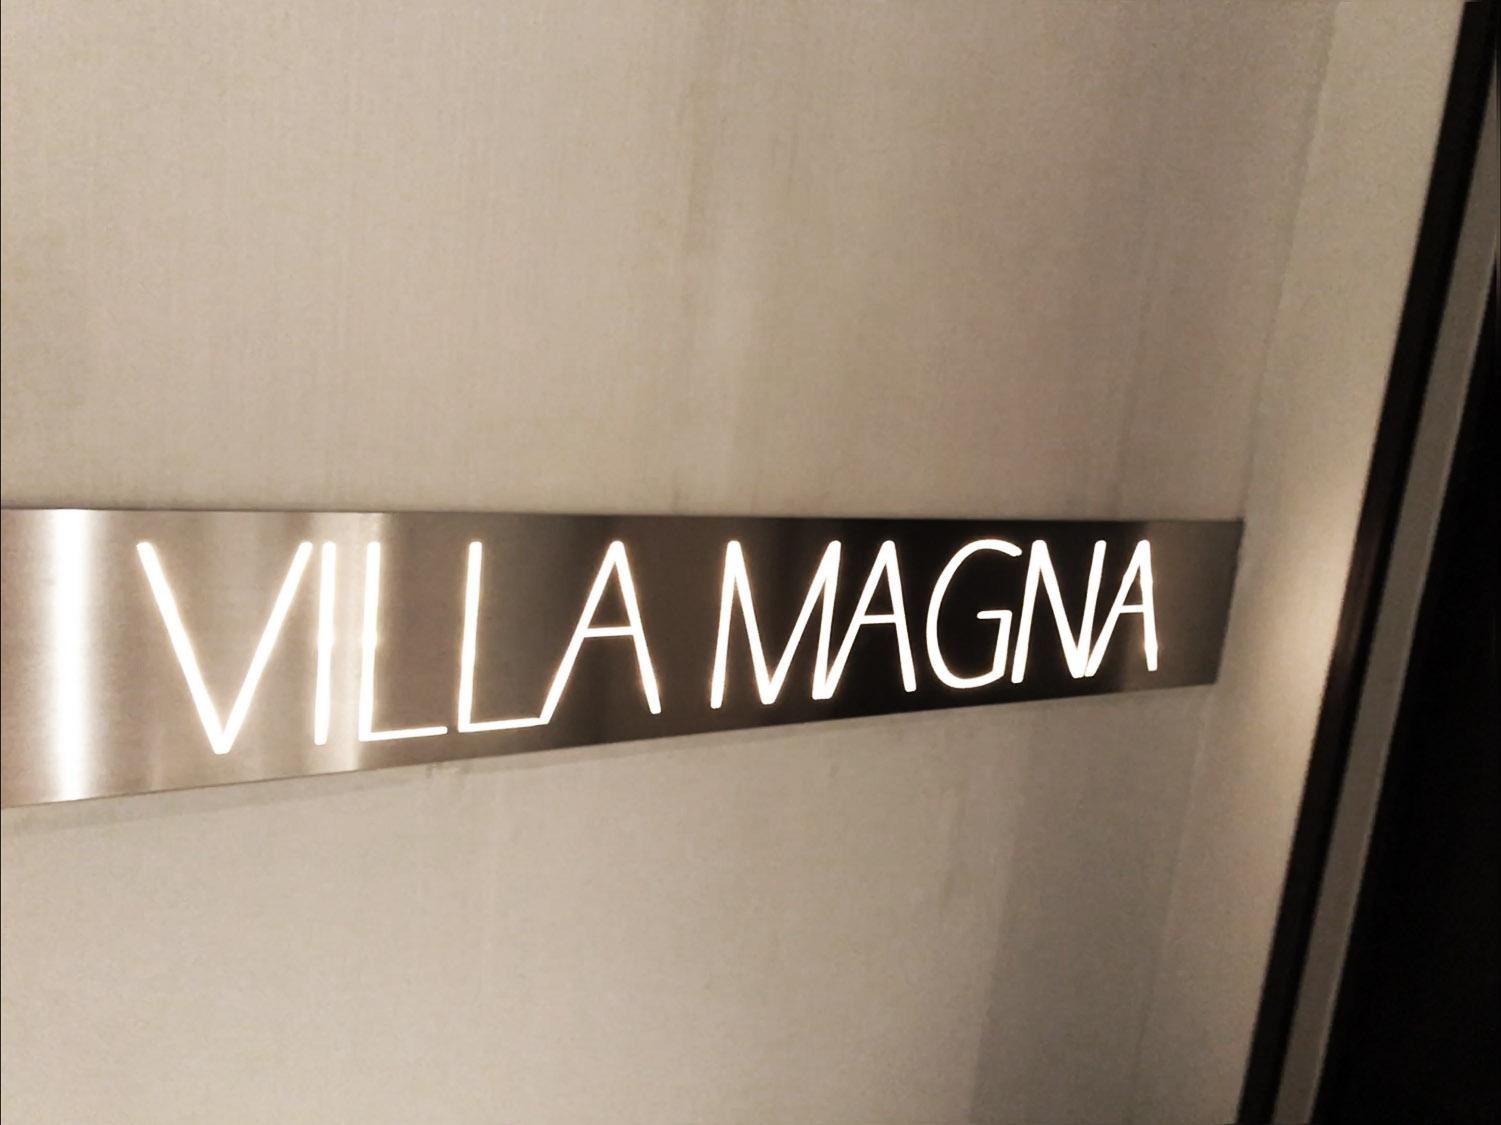 Villa Magna hotel sign in restaurant